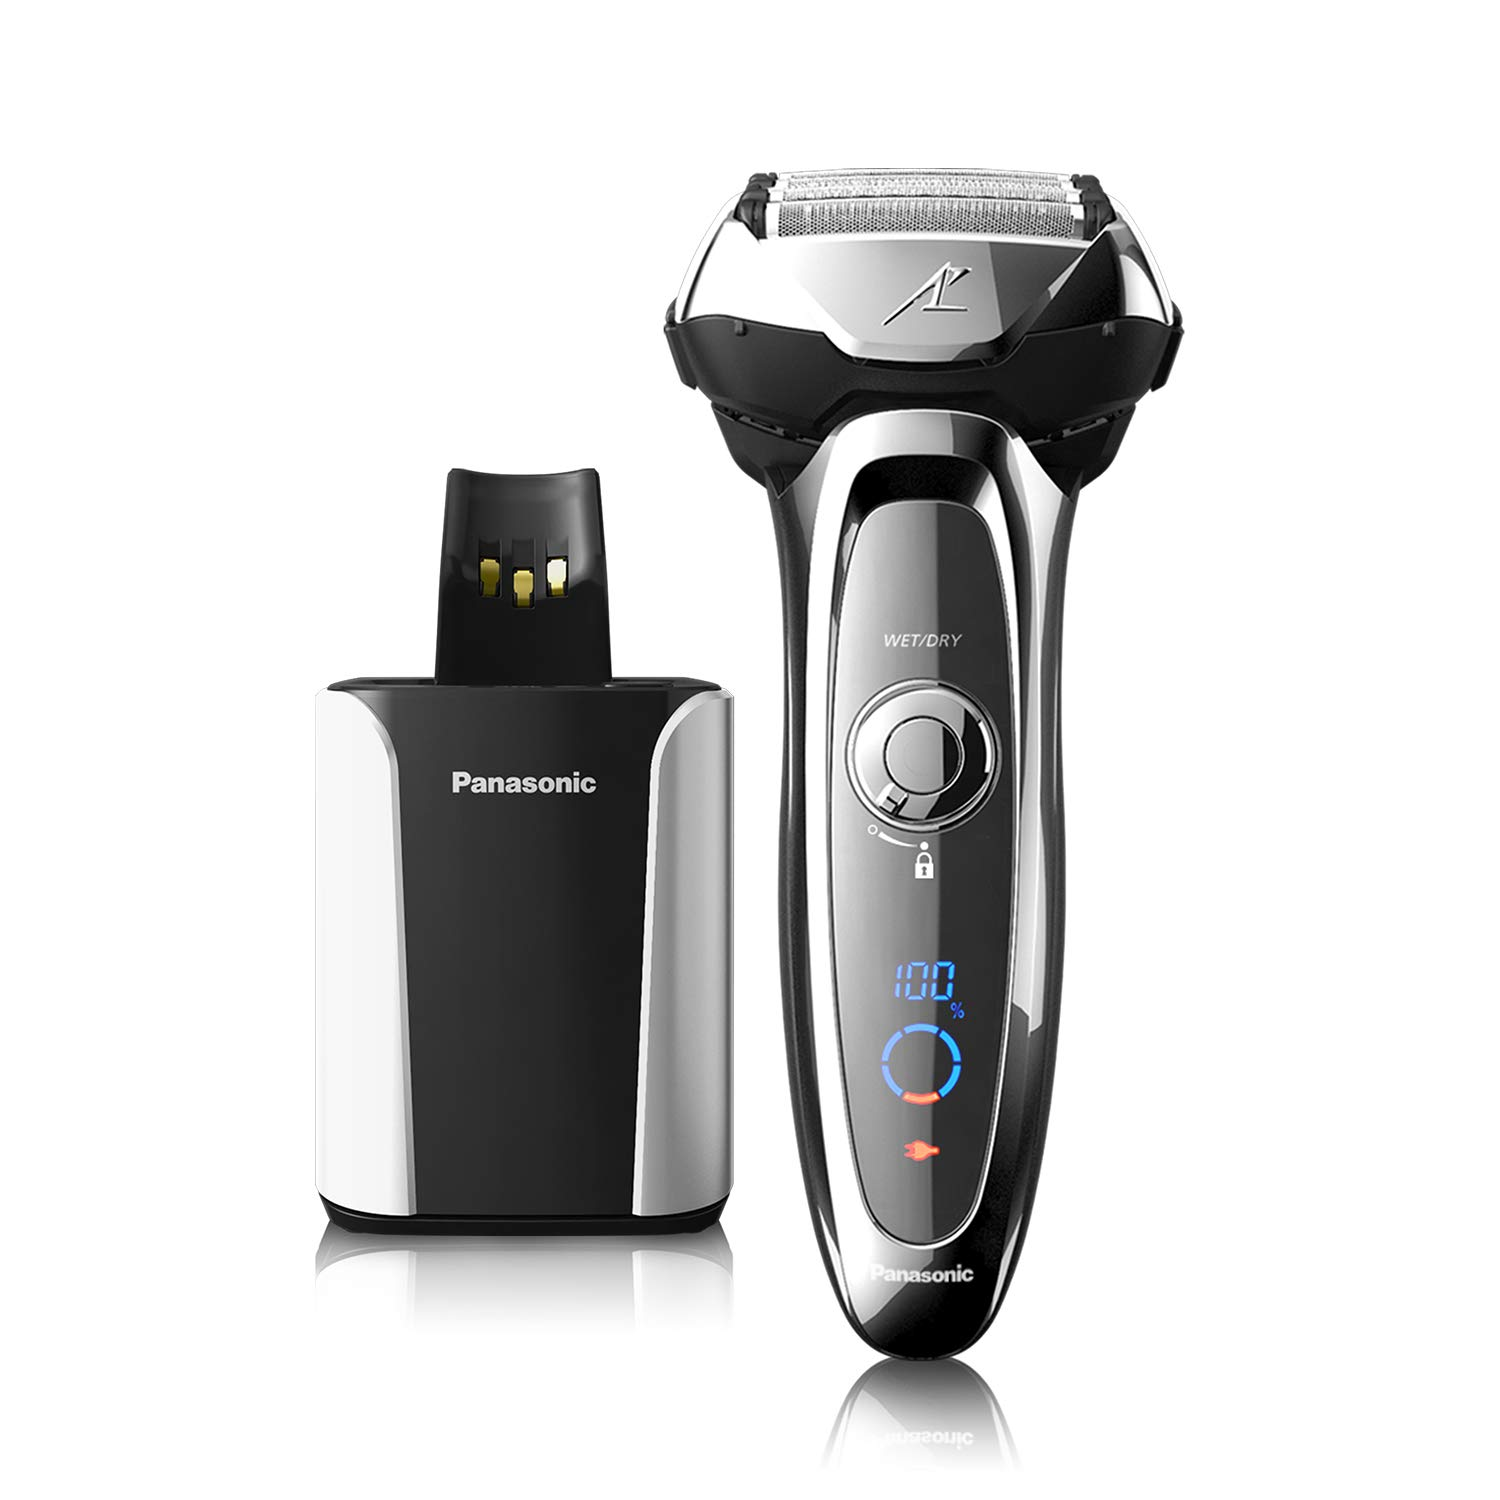 Panasonic ES-LV95-S Arc5 Wet/Dry Shaver with Cleaning and Charging ...